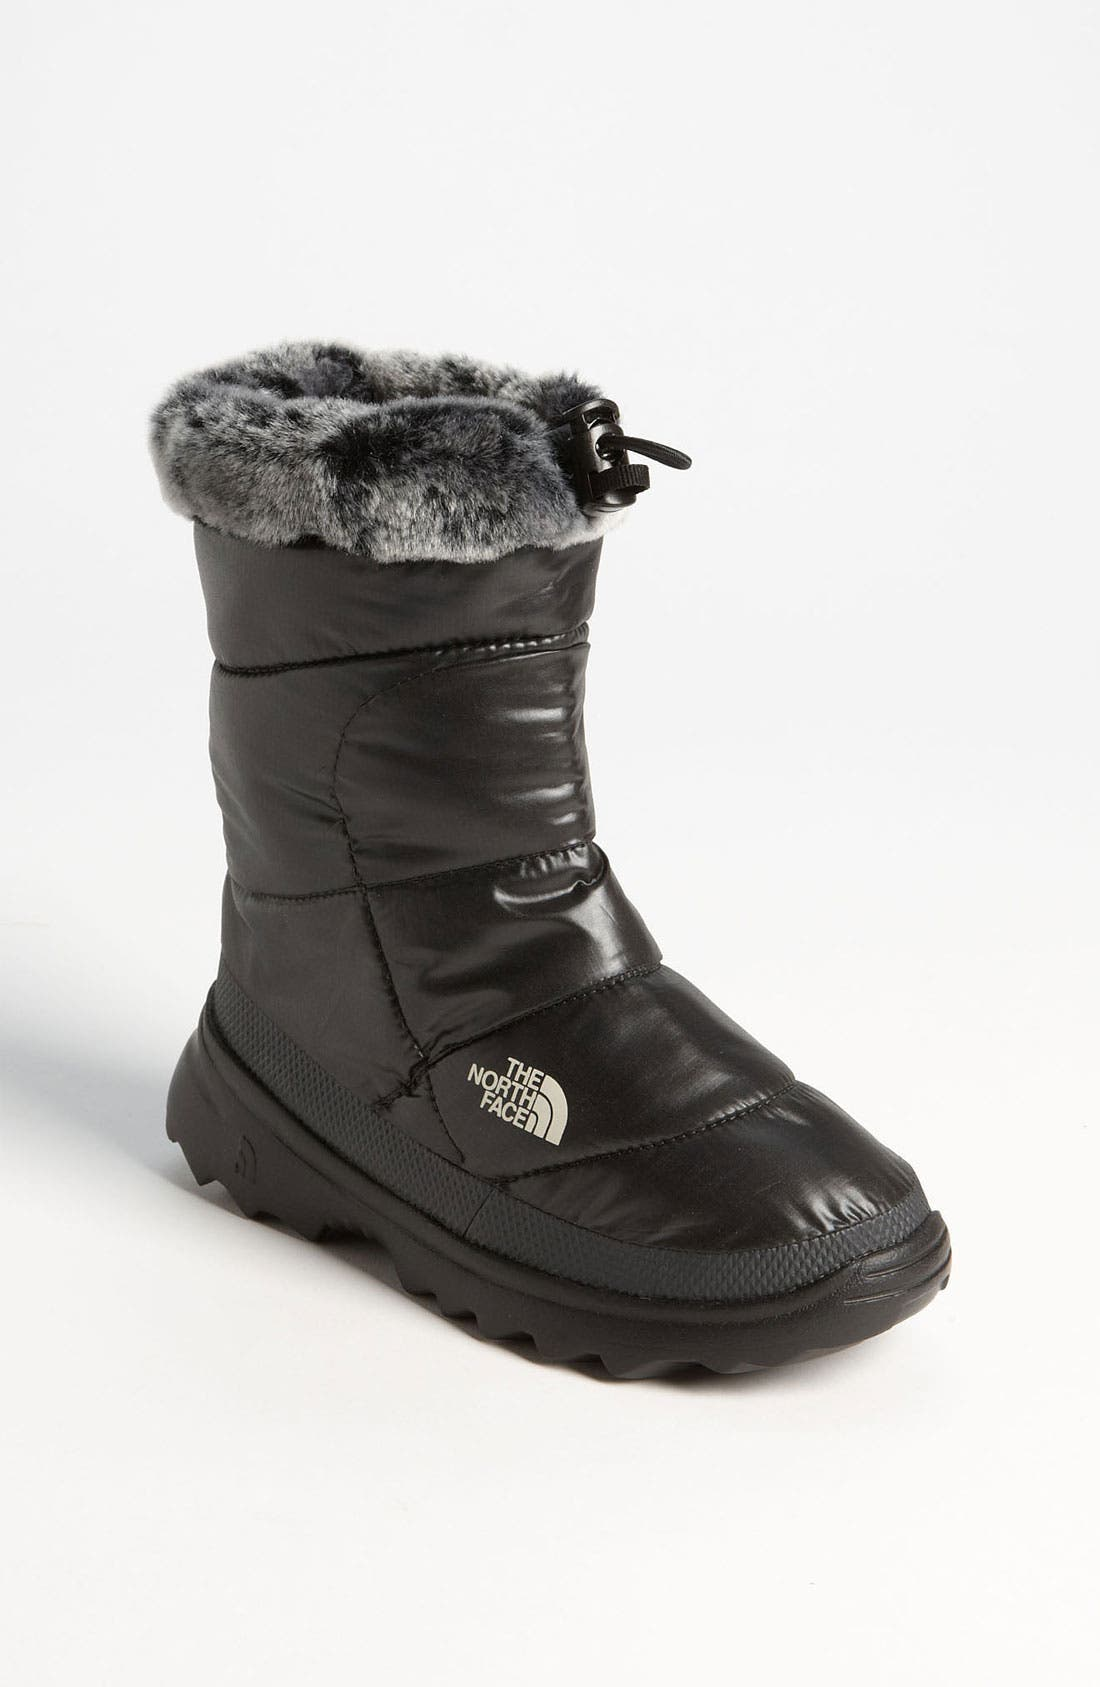 Alternate Image 1 Selected - The North Face 'Nuptse® II' Boot (Little Kid & Big Kid)